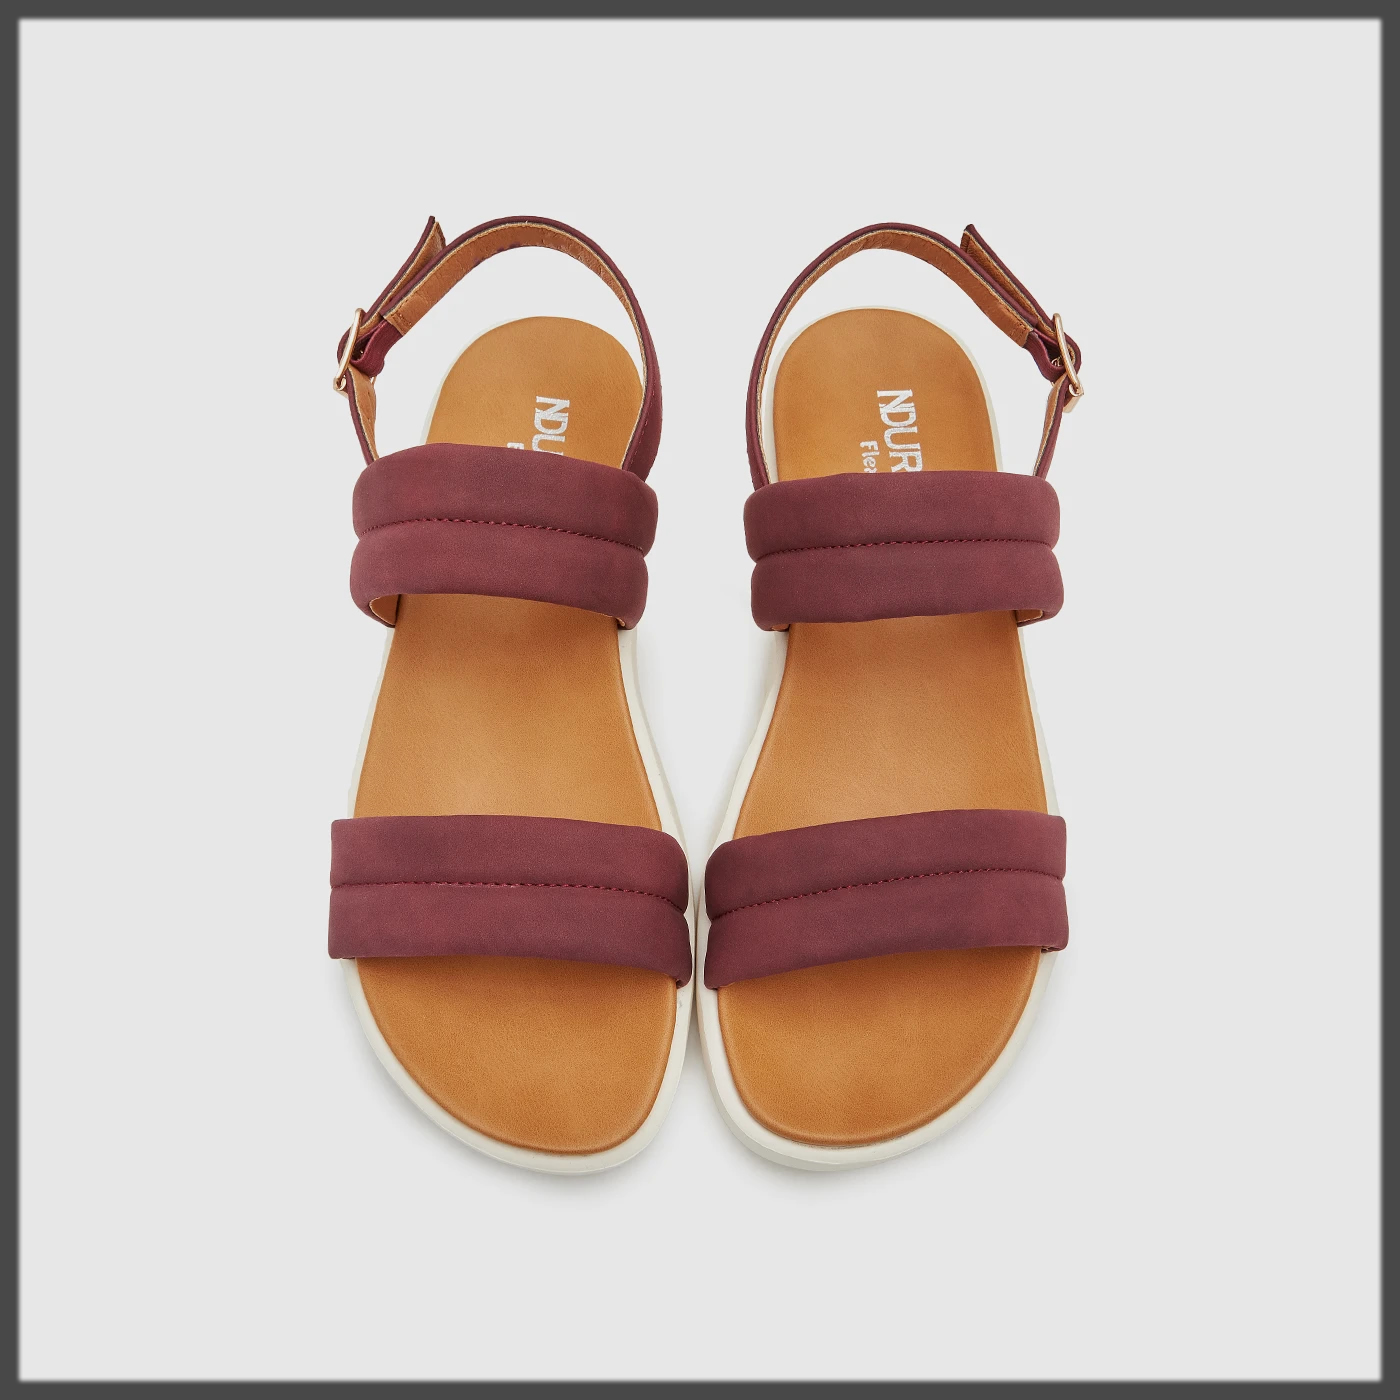 summer casual sandals by ndure for women